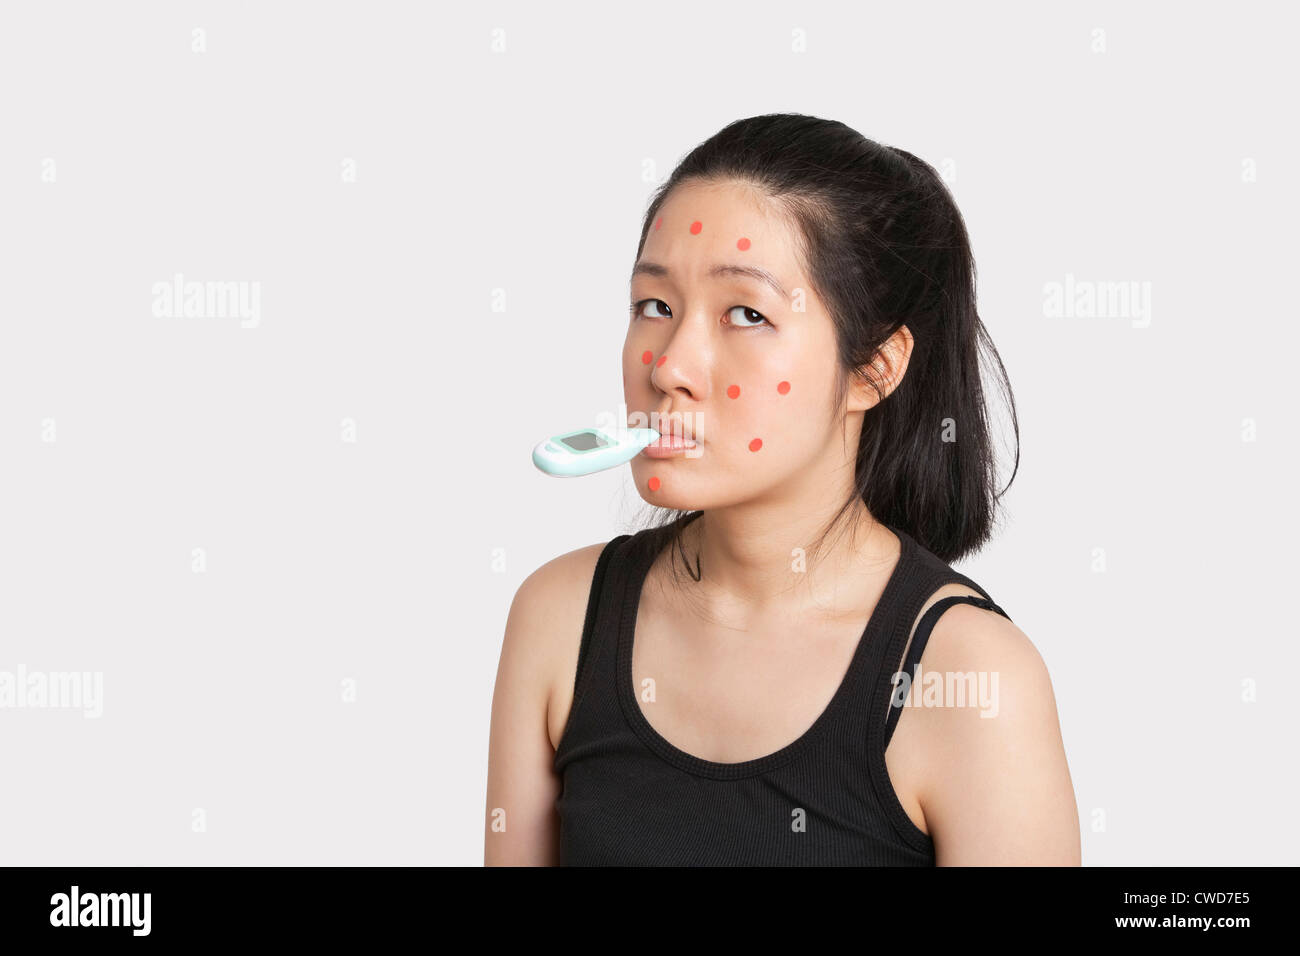 Woman with thermometer in mouth suffering from measles - Stock Image